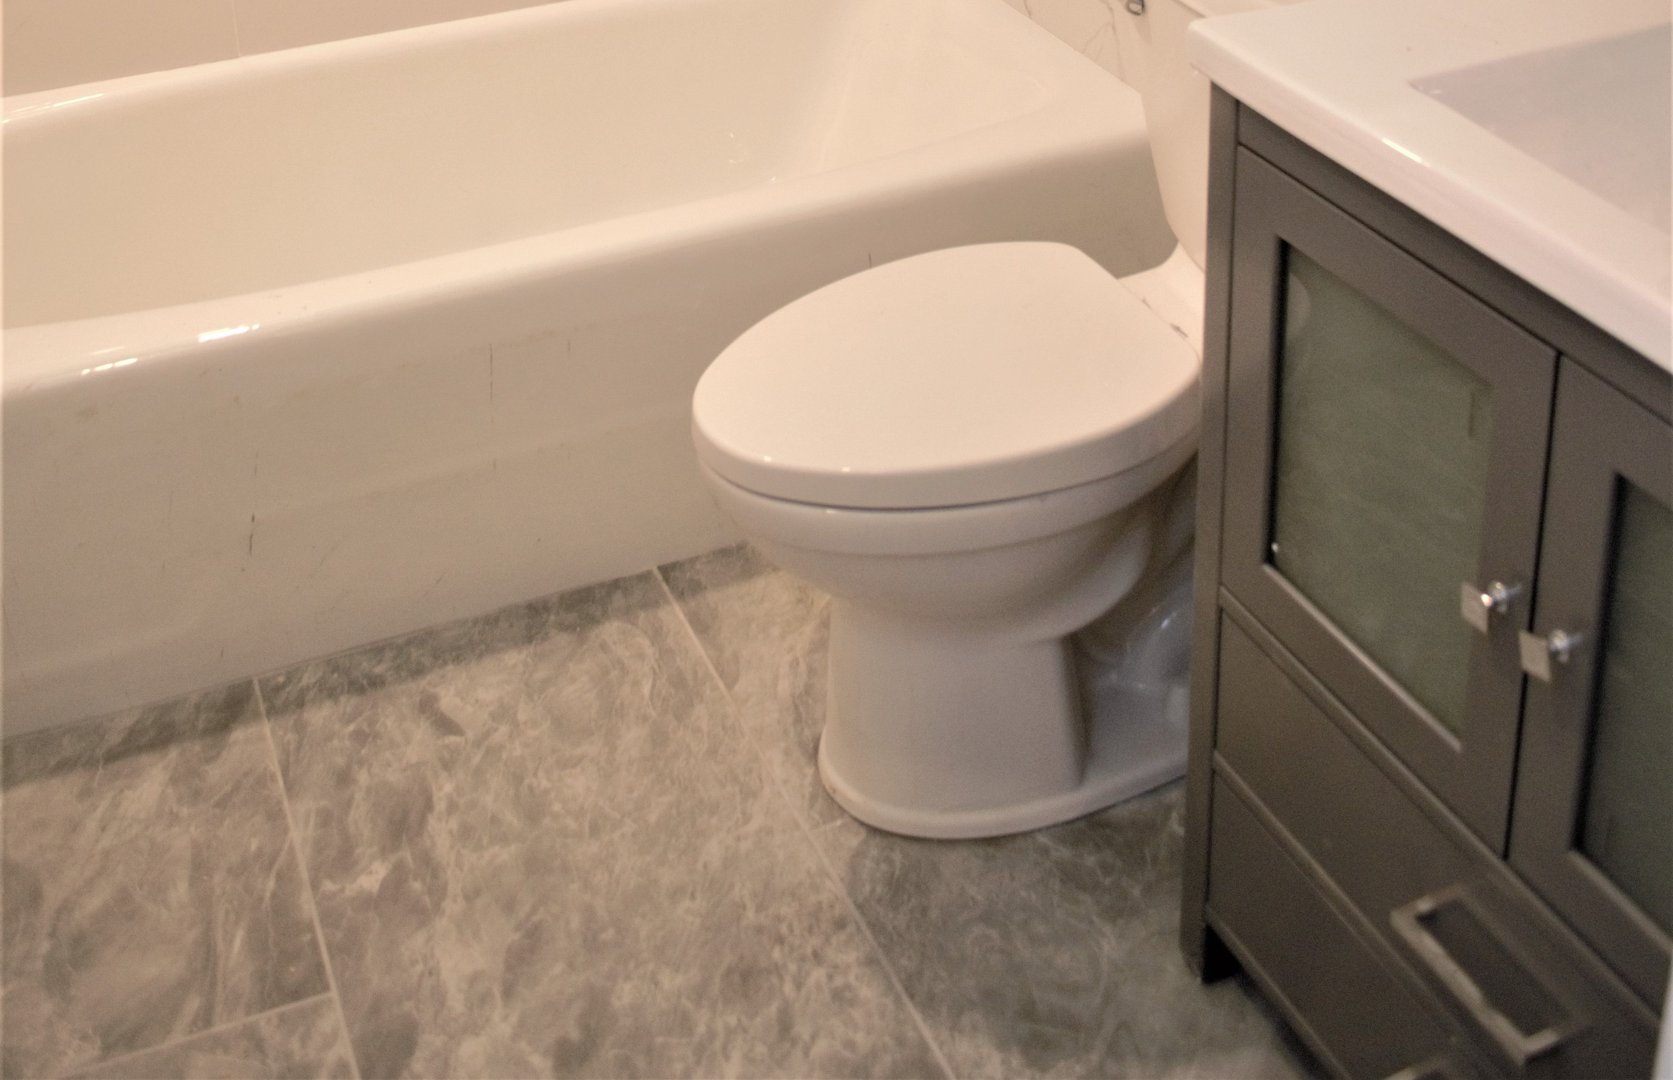 House for rent at 20 Sixth St, Etobicoke, ON. This is the bathroom with tile floor.